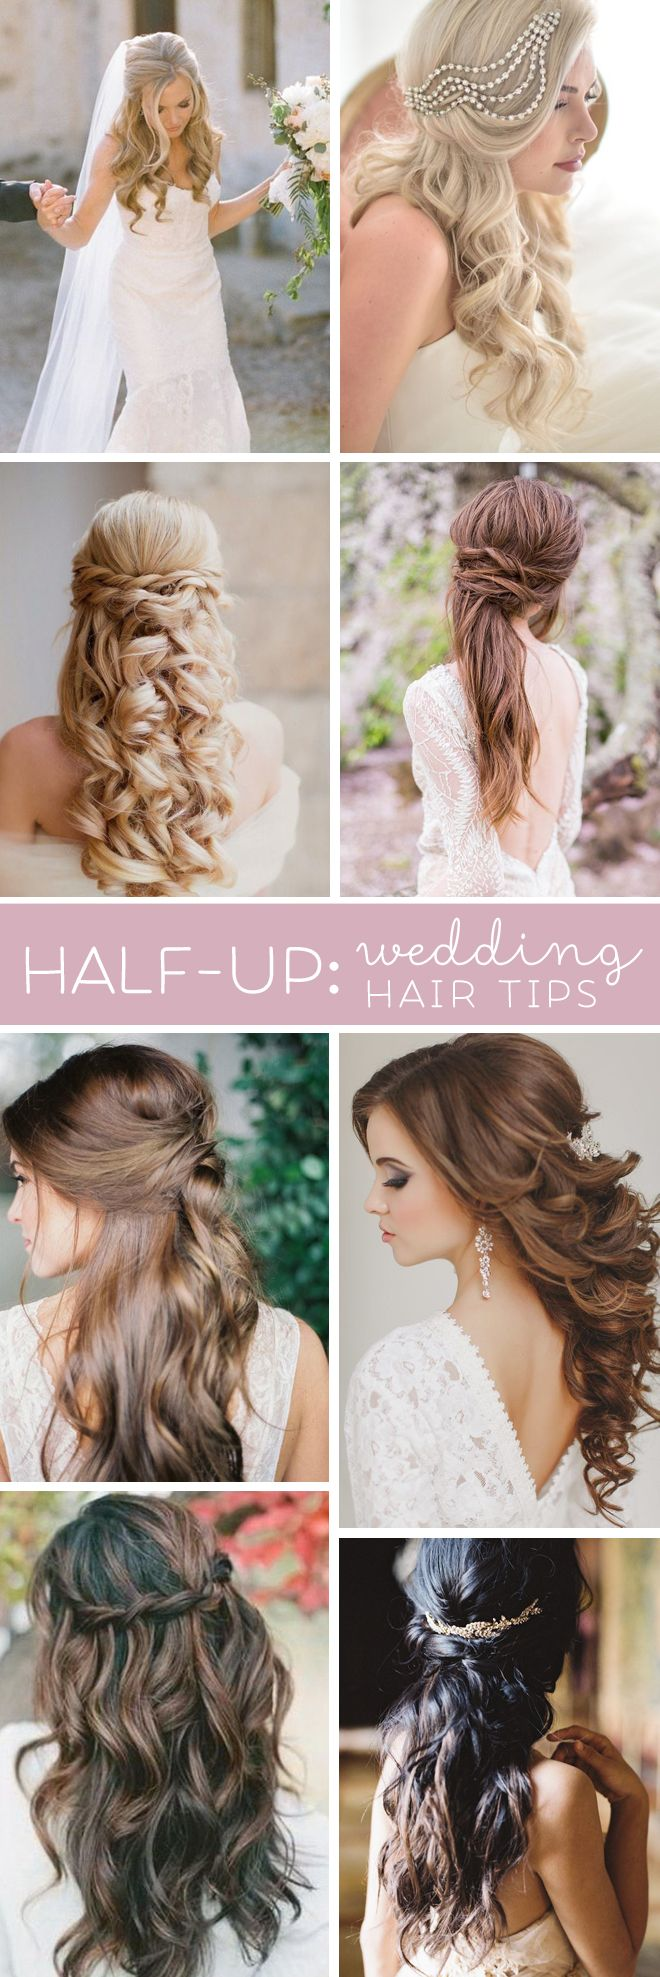 Terrific tips for wearing half-up hair styles for your wedding.. Don't forget personalized napkins for all of your wedding events! From the engagement party to the reception! www.napkinspersonalized.com: Engagement Hairstyle, Hair Down Wedding Style,